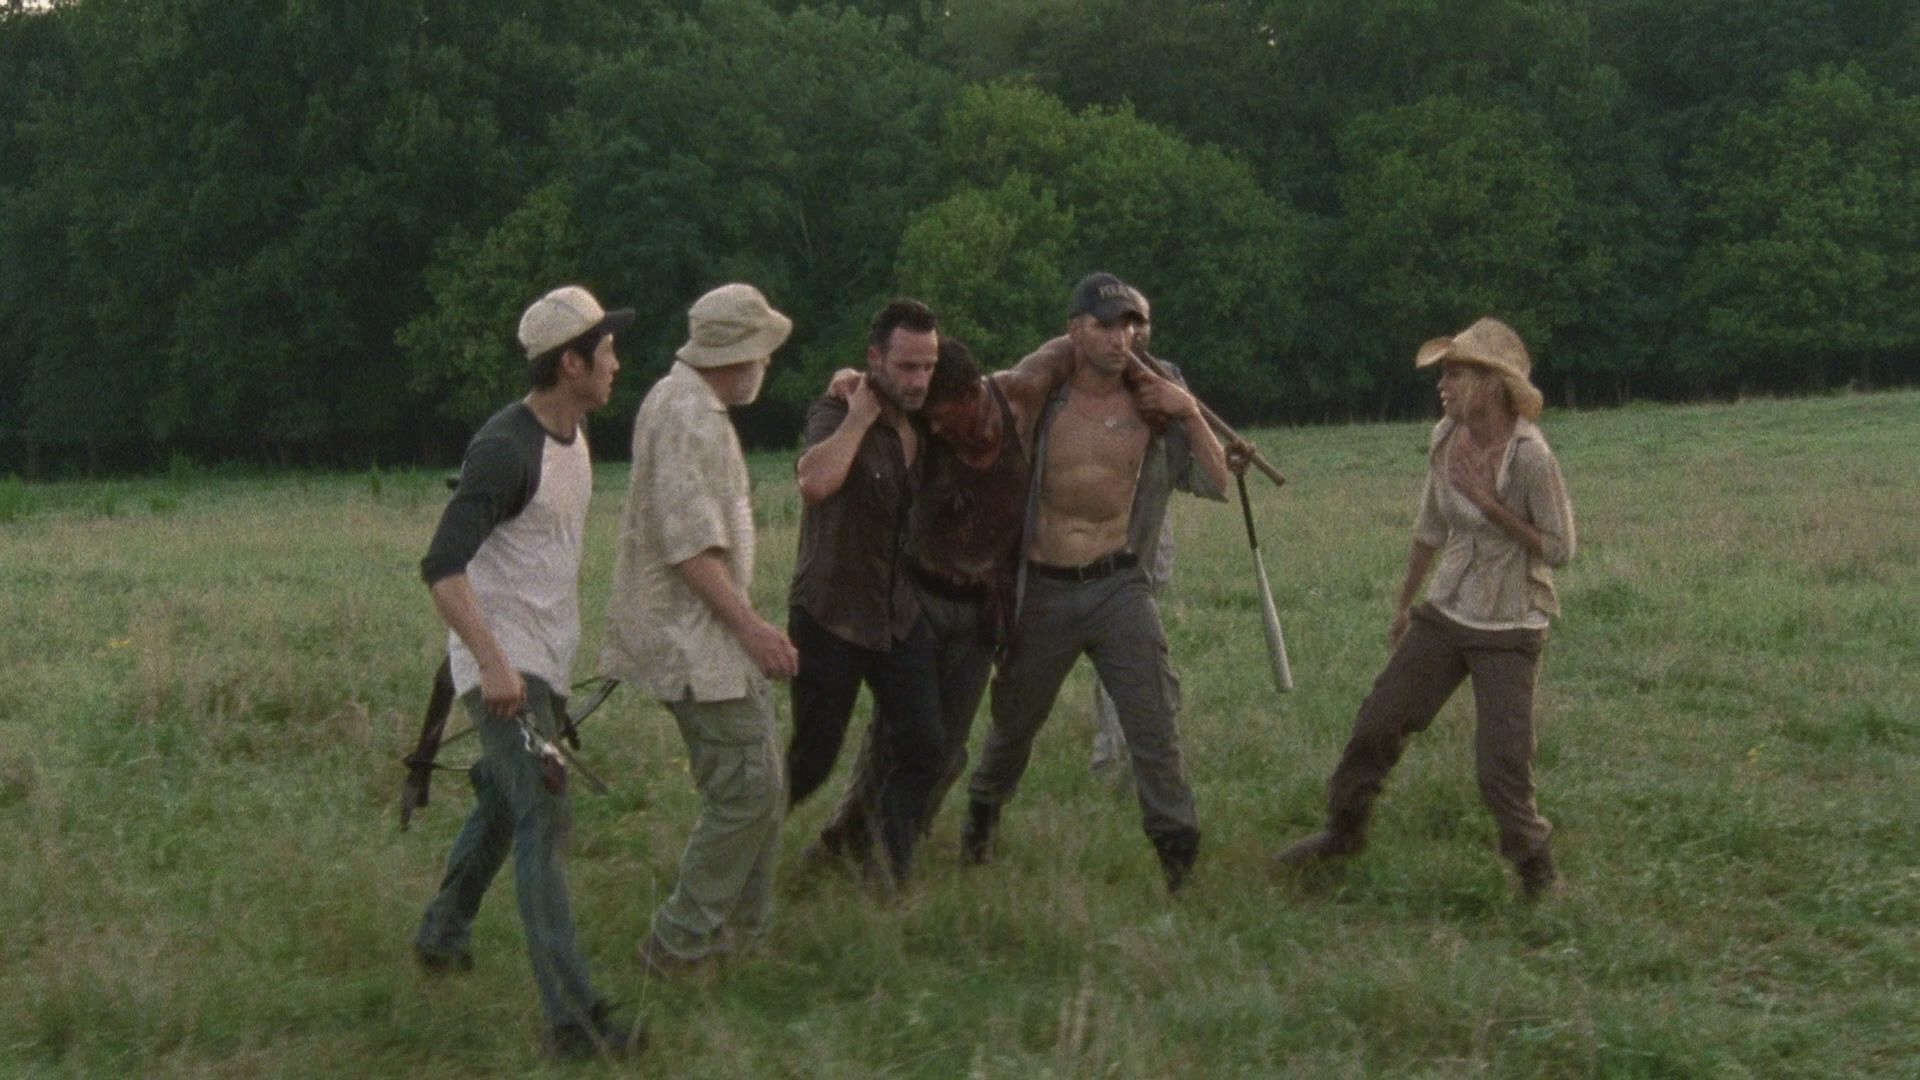 Concerned for their safety, the group makes a plan – one that Hershel disagrees with adamantly. He makes it clear the group is fine to stay for now, but not indefinitely.